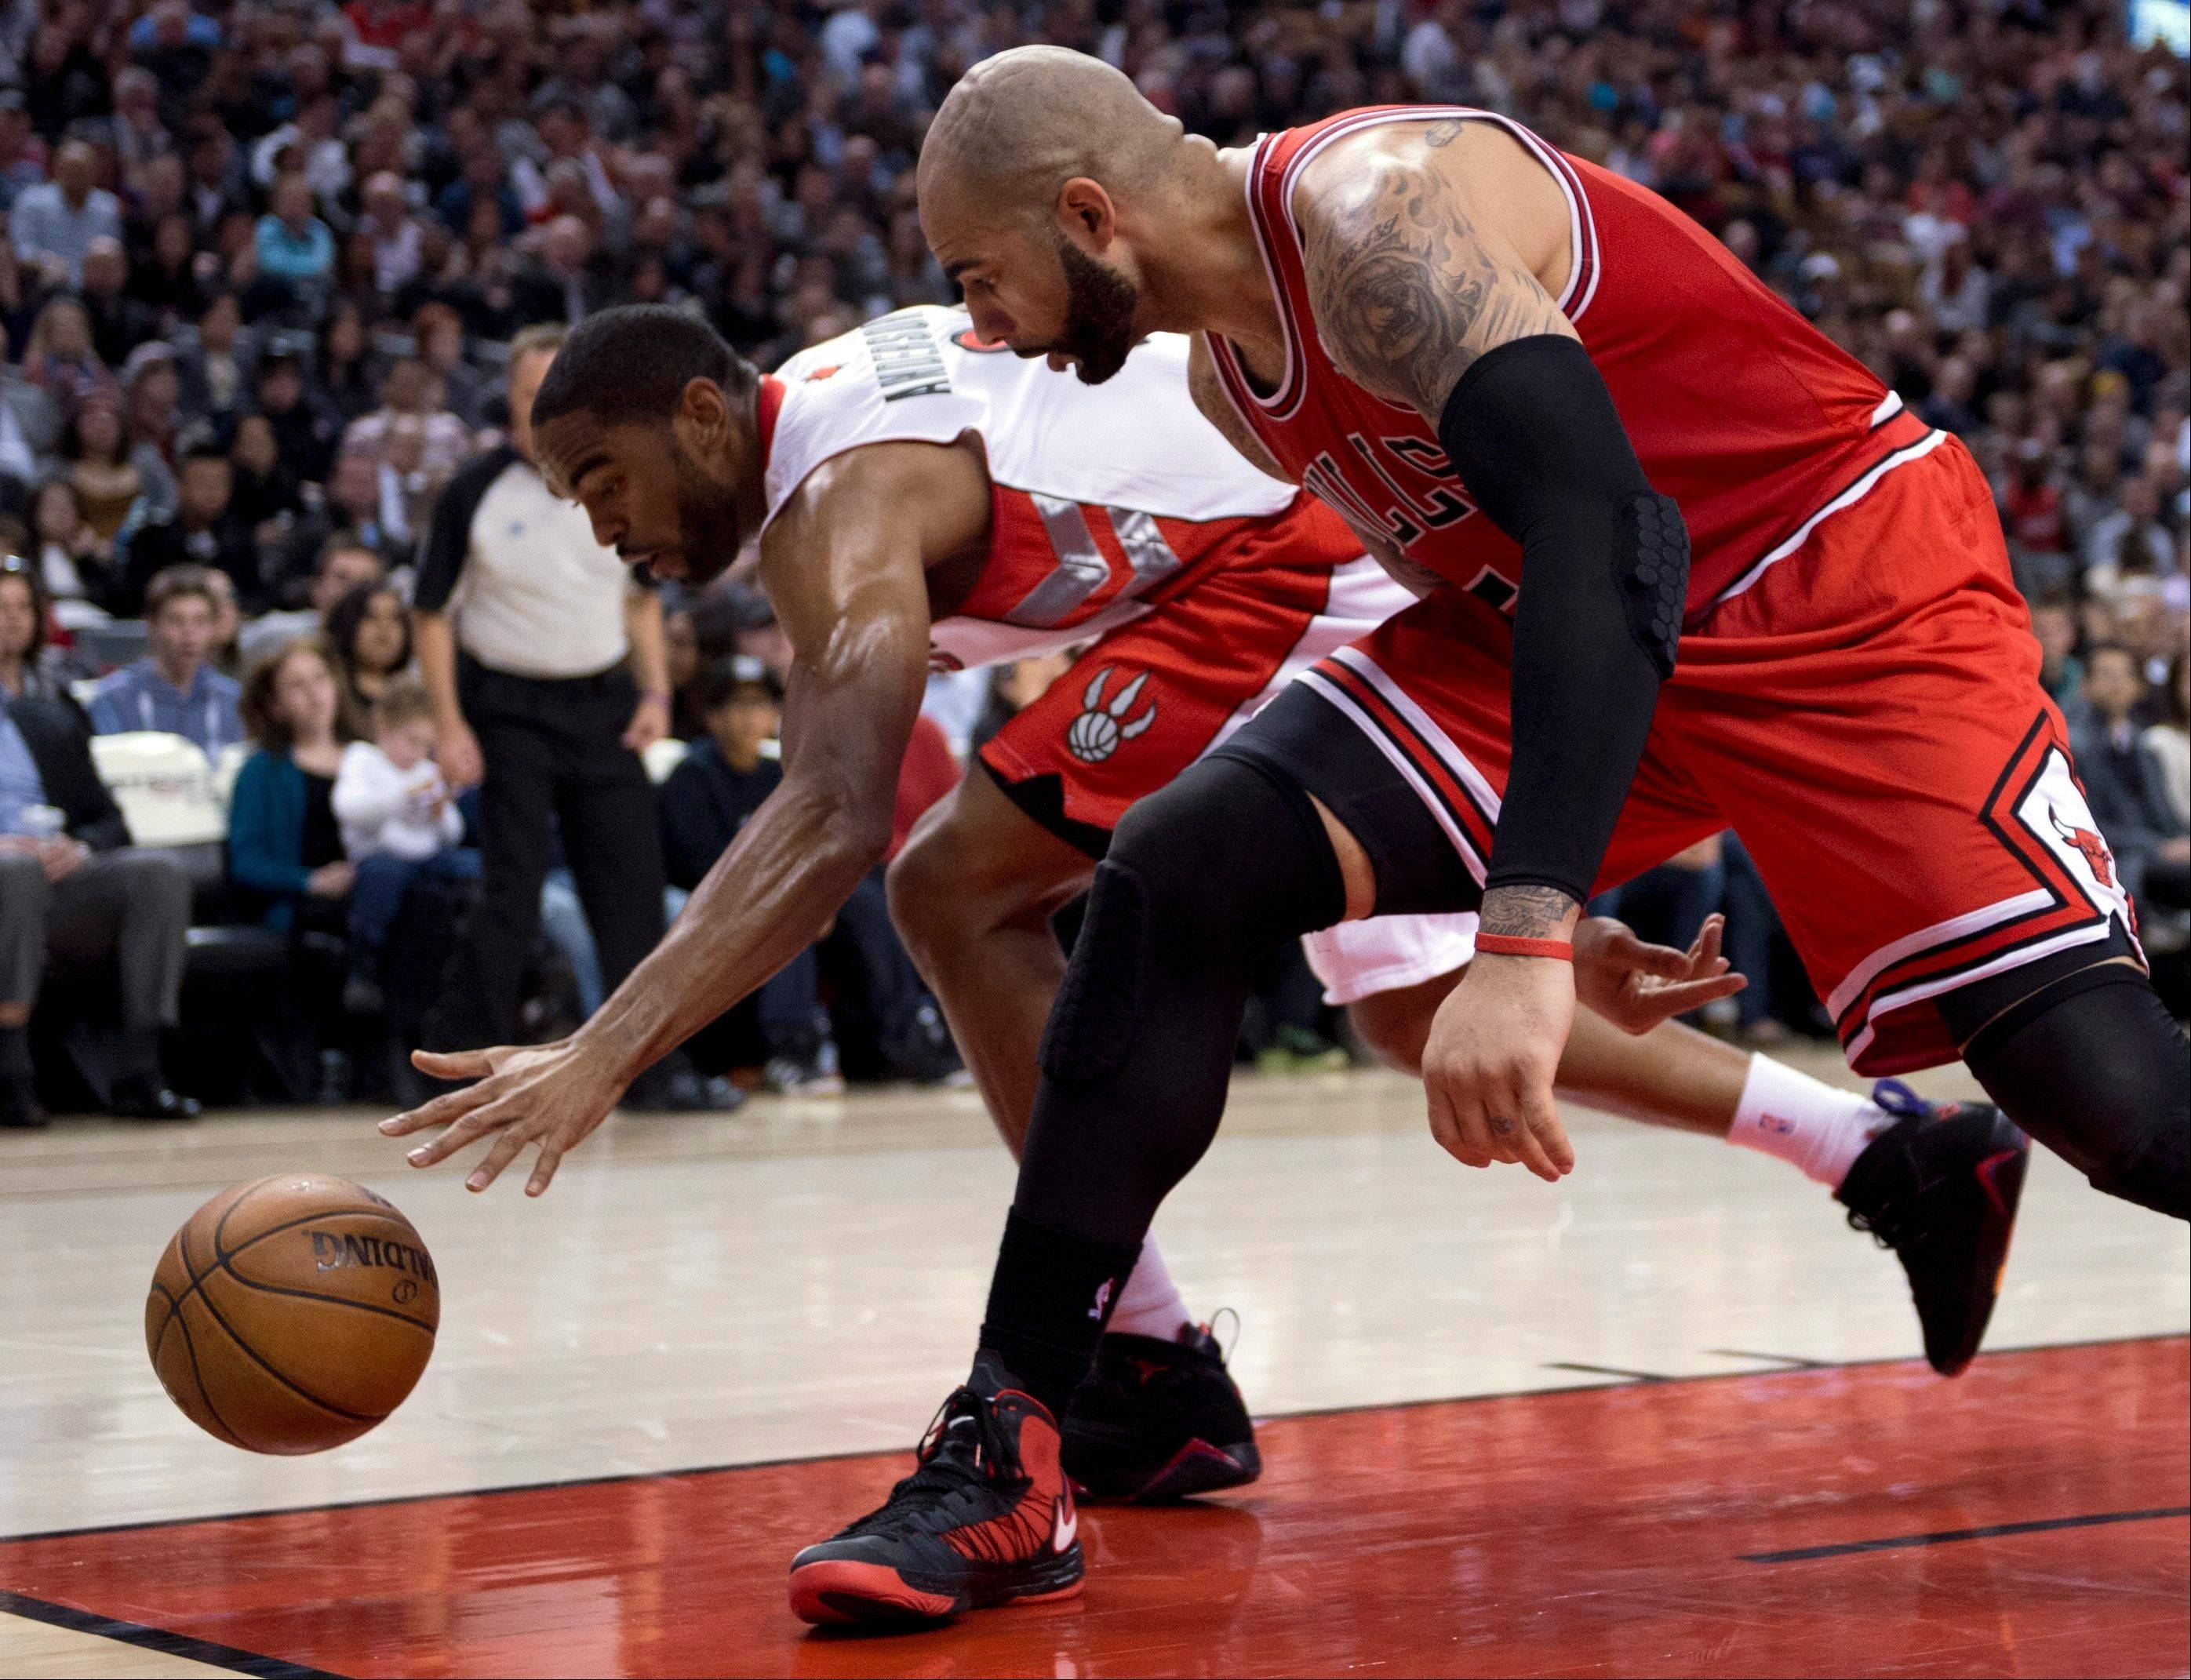 Toronto Raptors forward Alan Anderson and Chicago Bulls forward Carlos Boozer, right, chase down the loose ball during the first half NBA basketball game in Toronto on Friday, April 12, 2013.